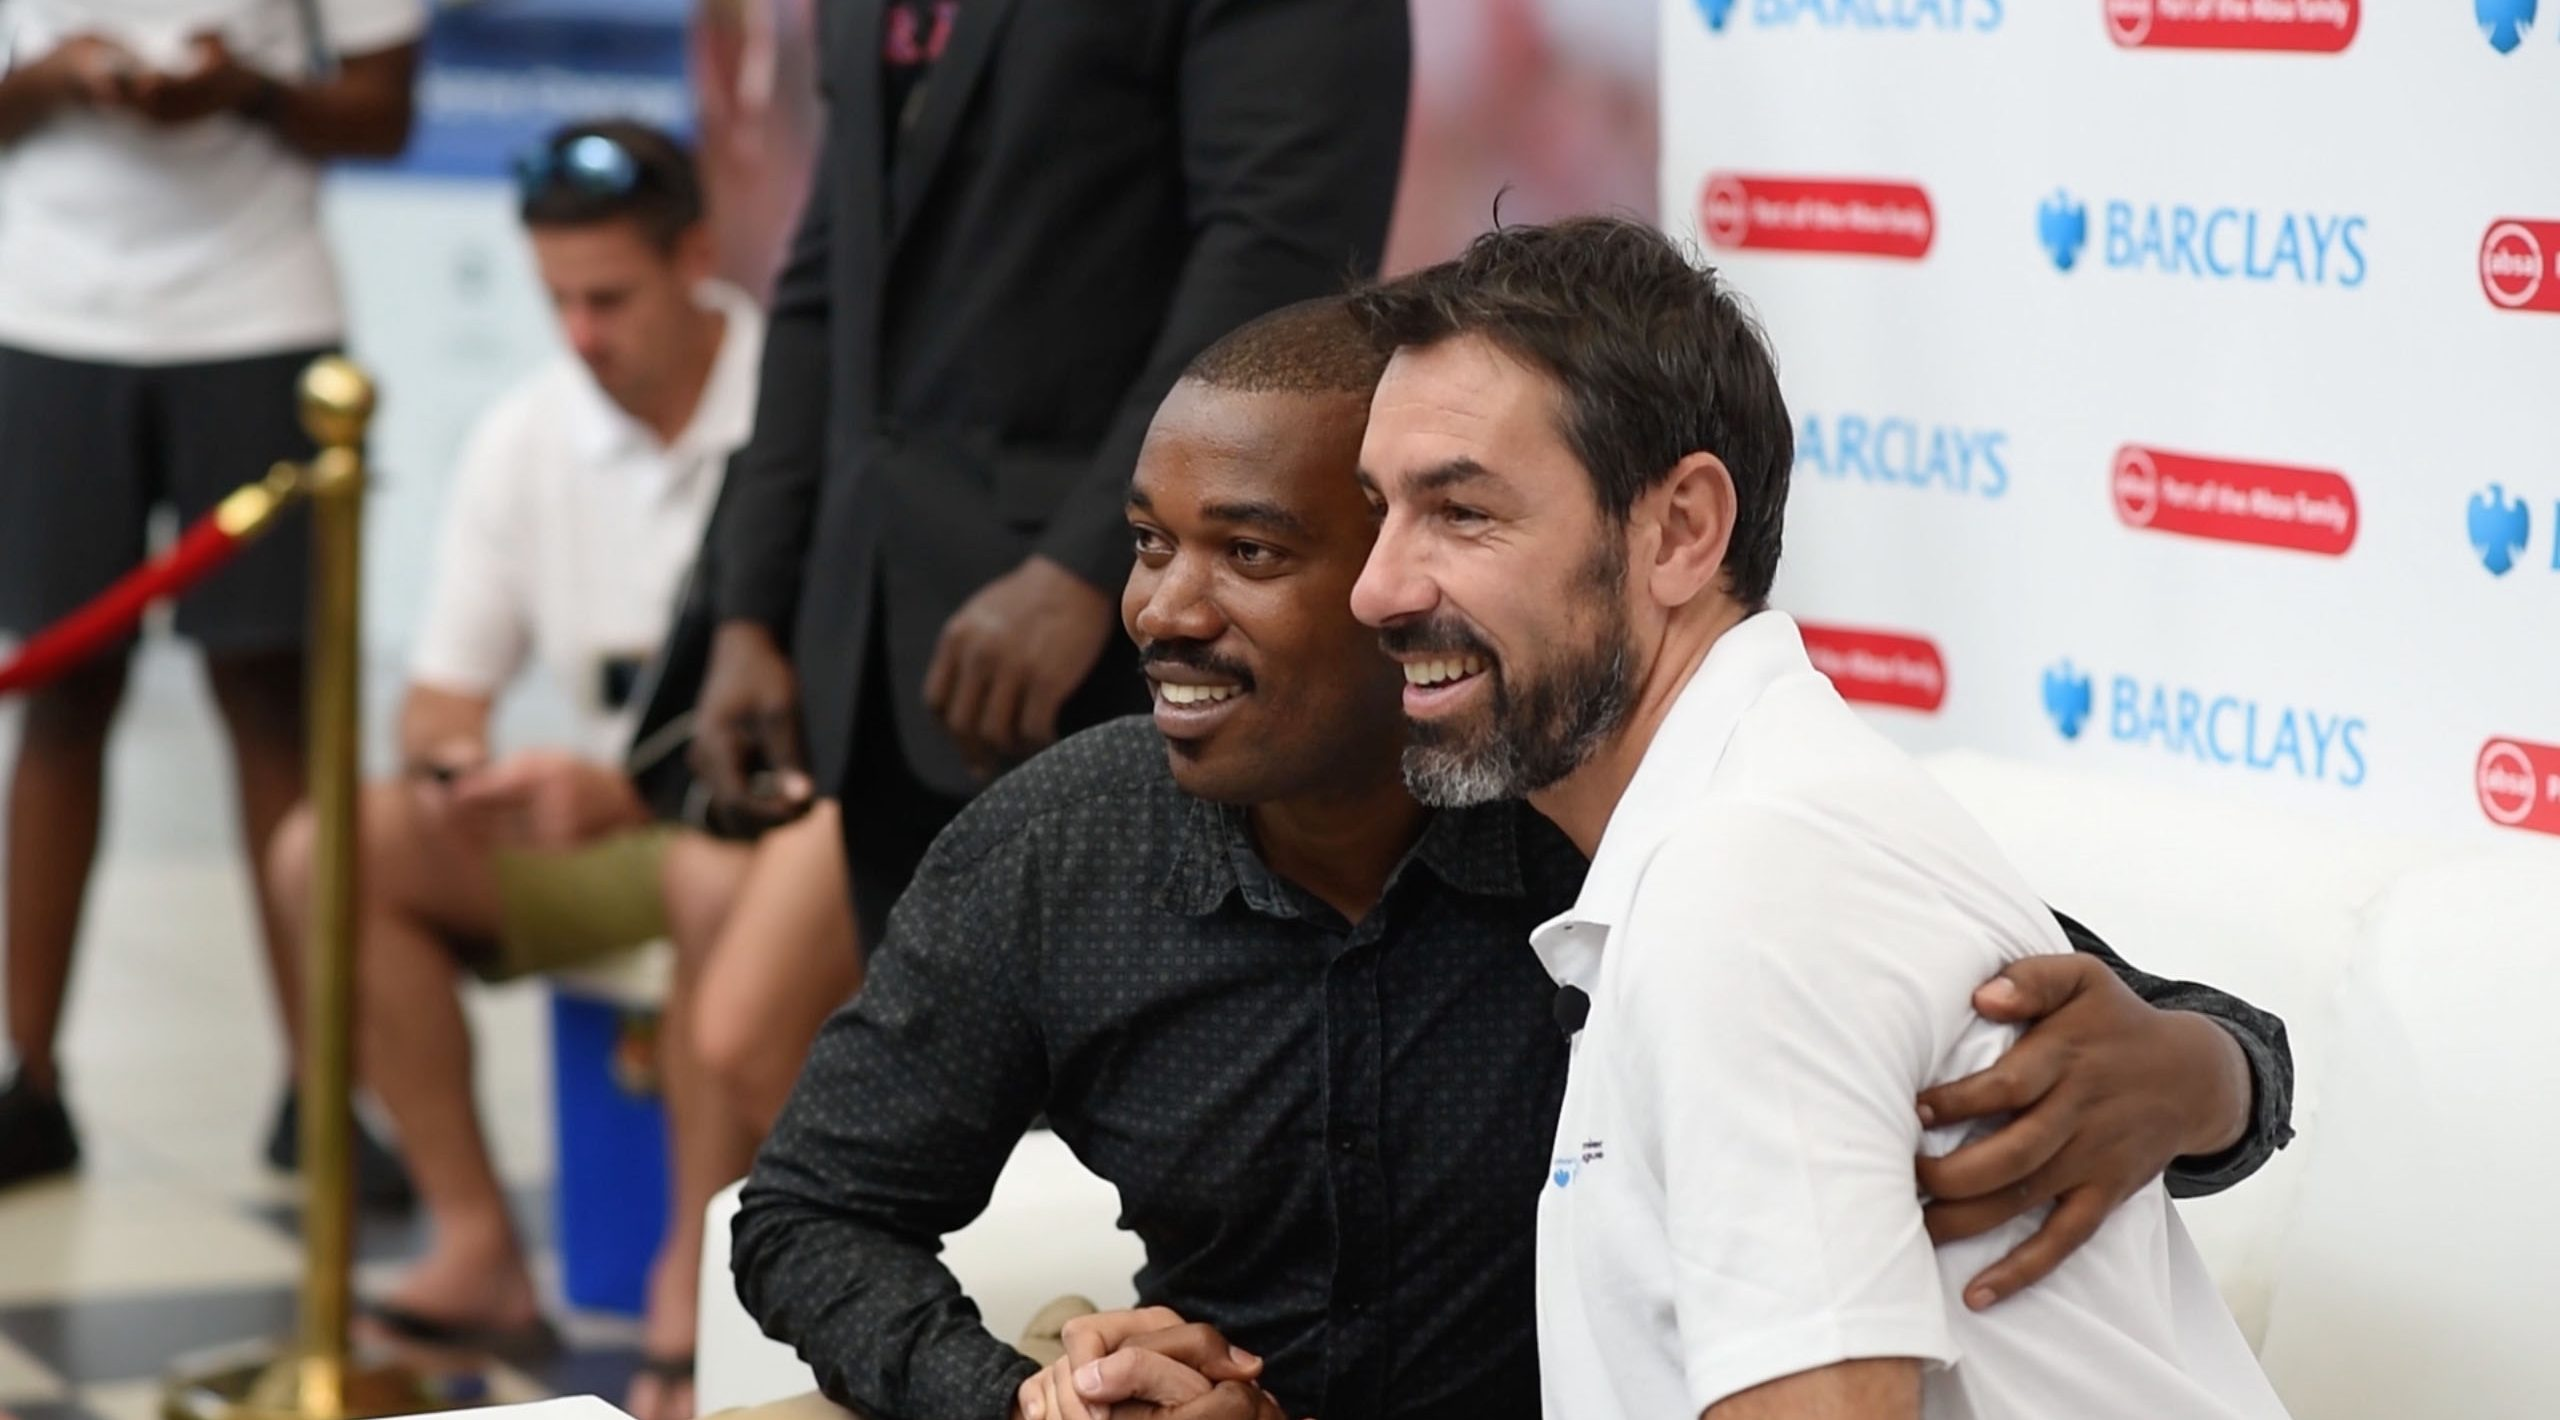 Robert Pires in Tanzania For Barclays/Absa's #SuperFansUnited